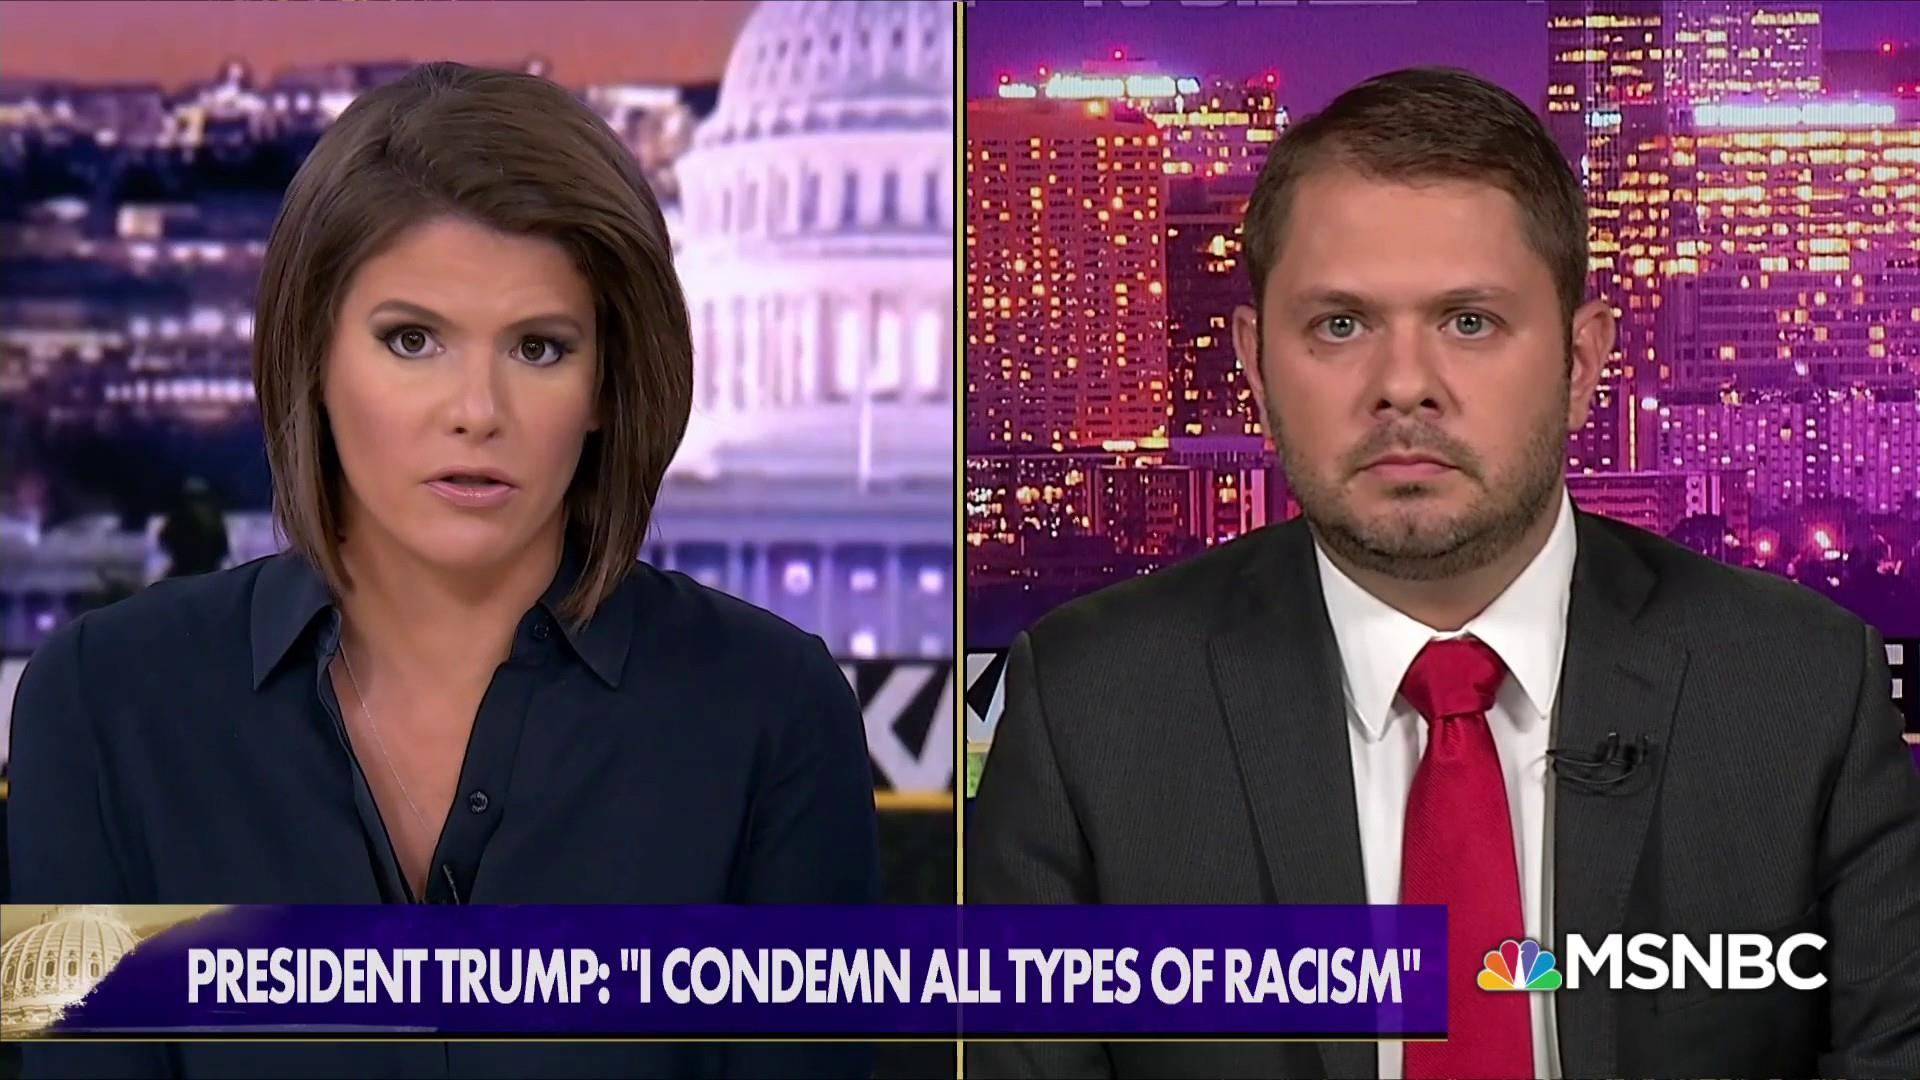 Rep. Gallego: White nationalist demonstrators are 'losers'